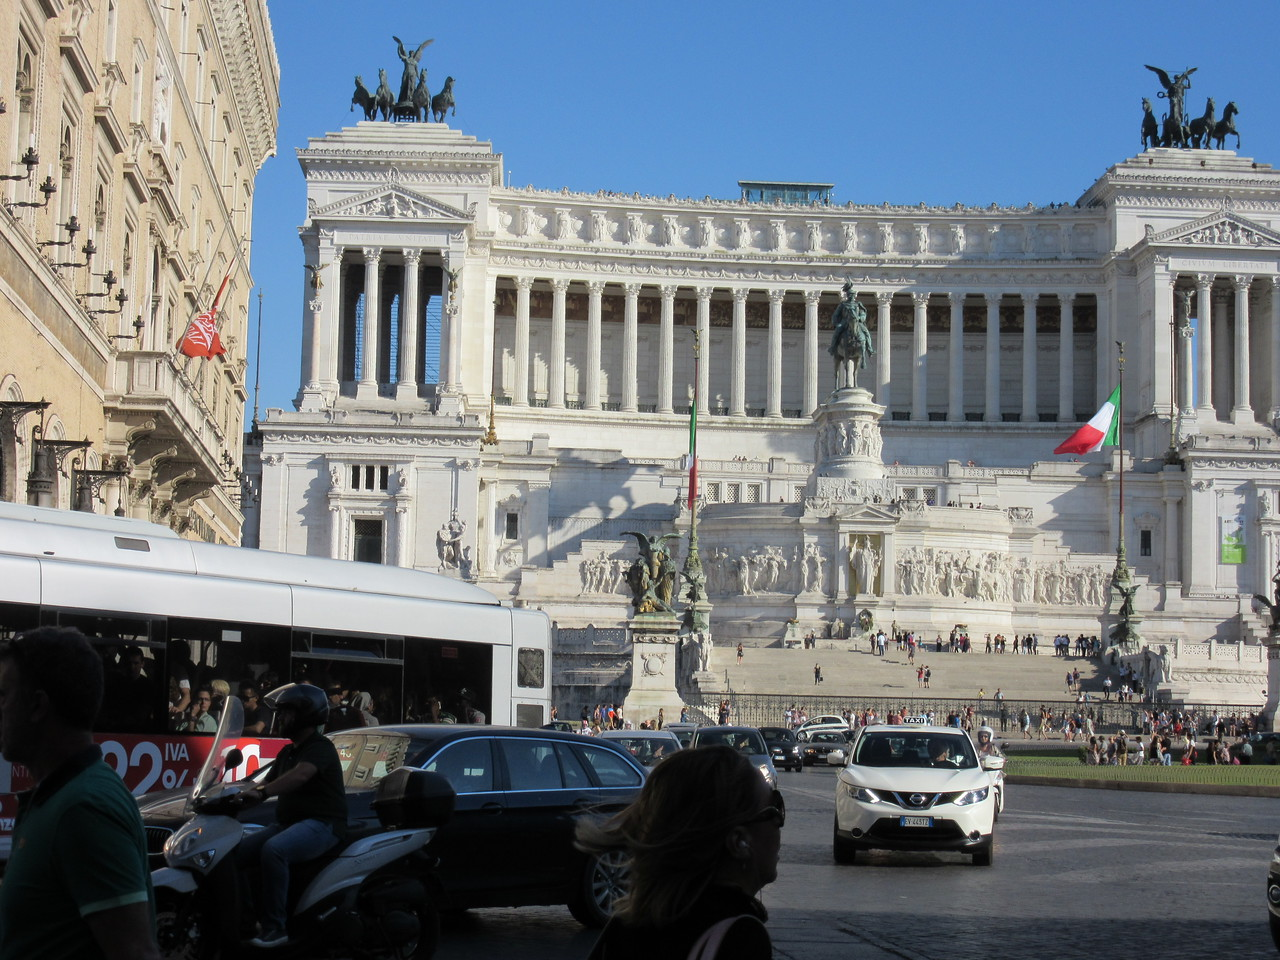 Altare della Patria--Capital of Rome--Altar of the Fatherland